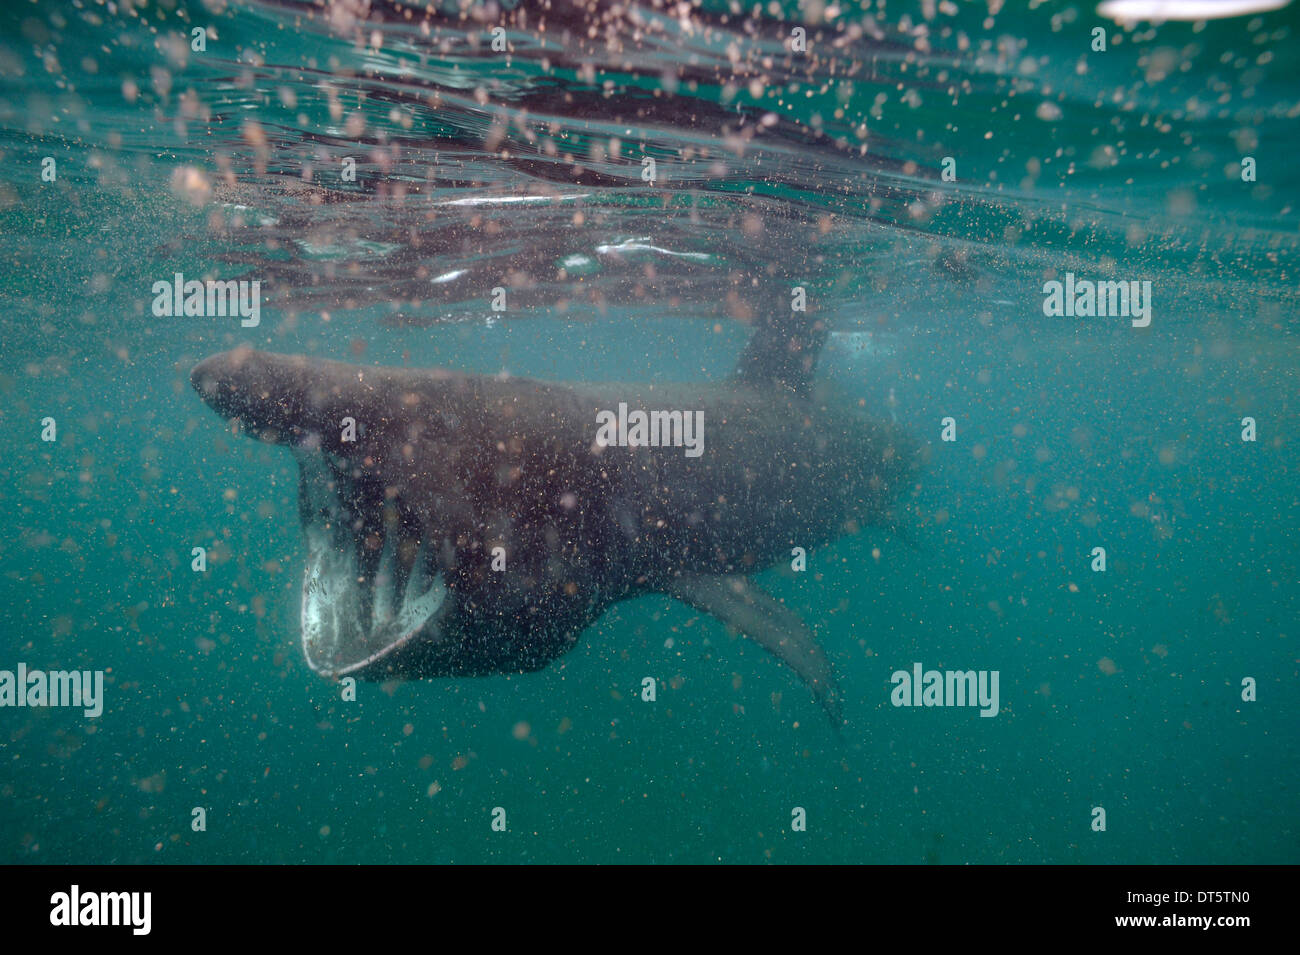 Basking shark in thick plankton - Stock Image